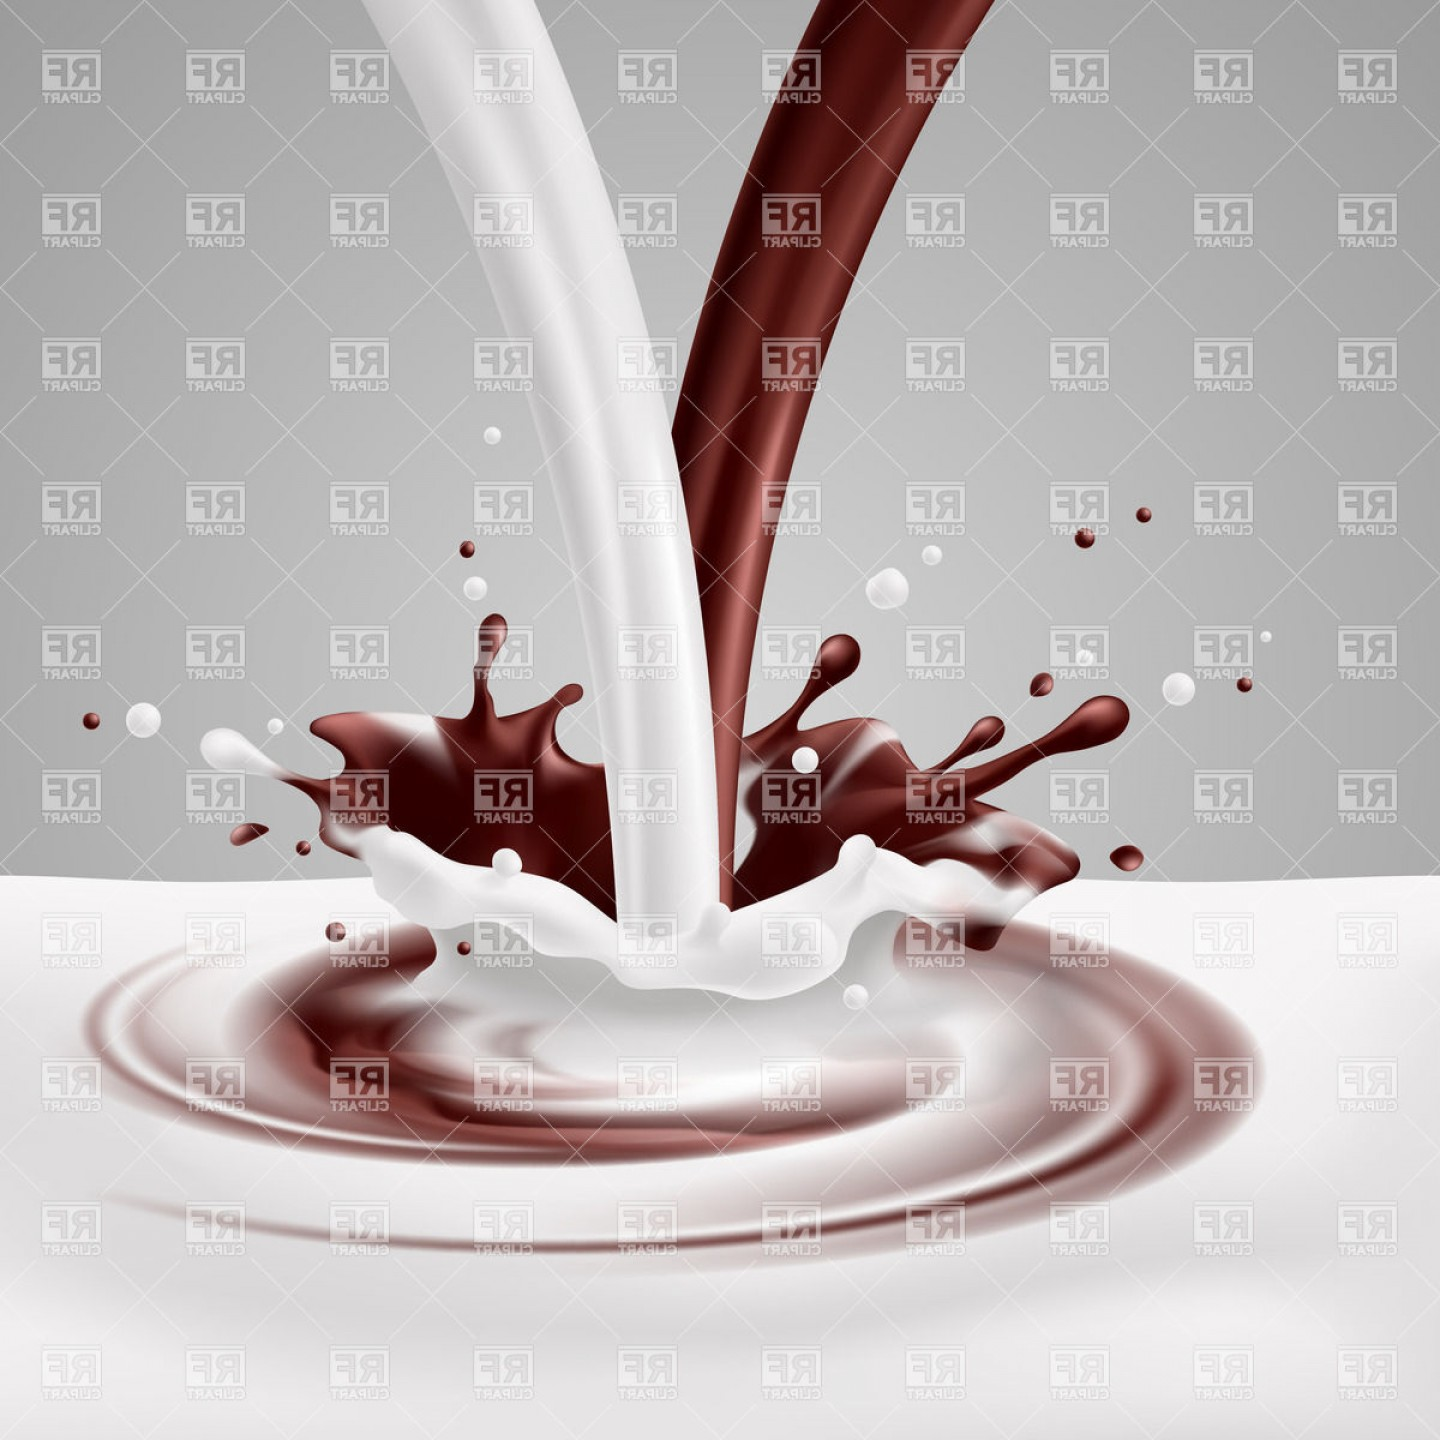 Chocolate Clip Art Vector: Milk And Chocolate Pour Mixing With Splashes Vector Clipart